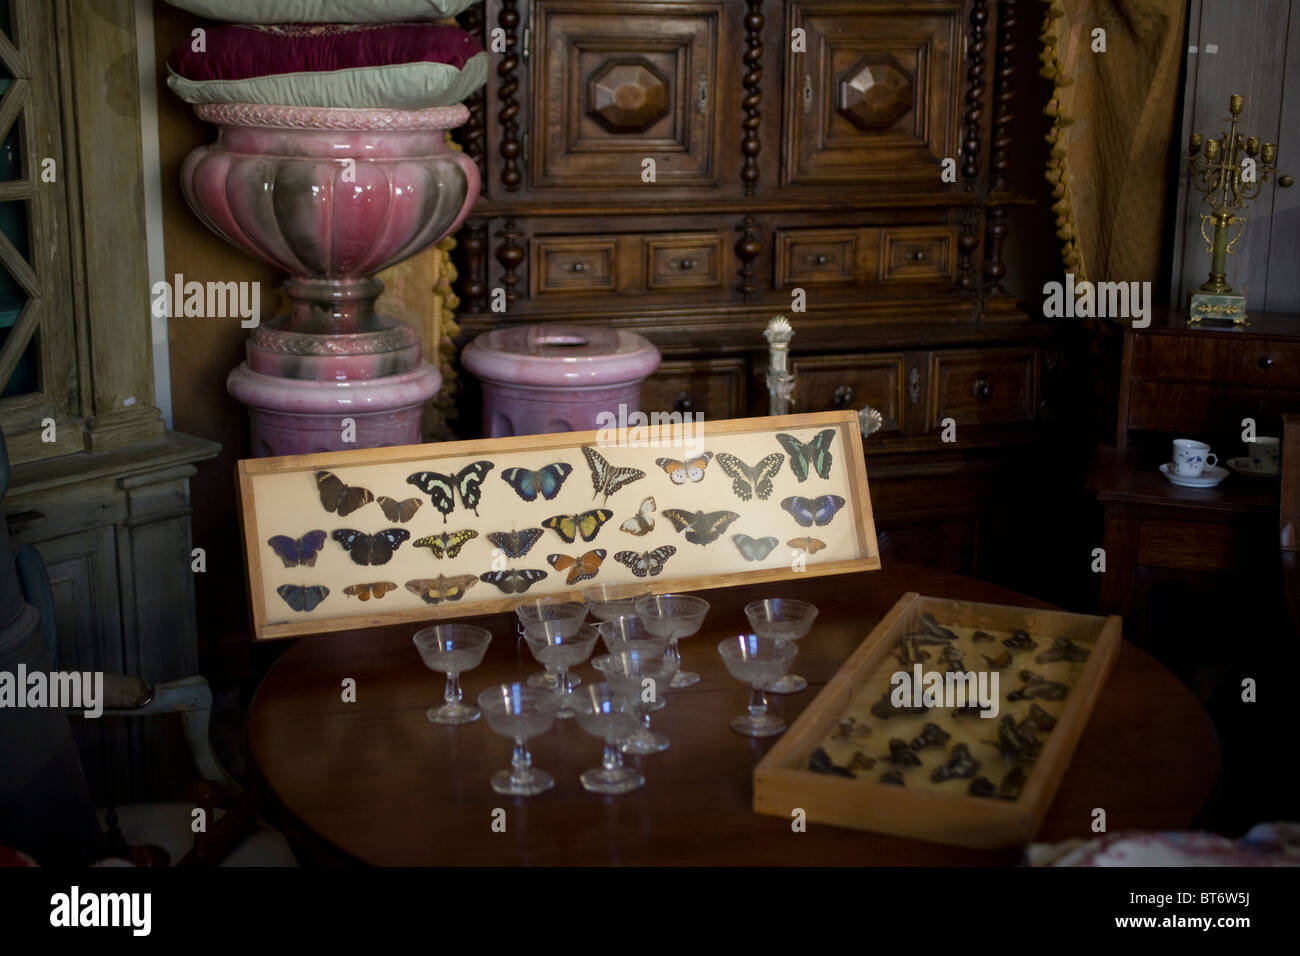 A collection of pinned exotic butterflies in an antique shop in Uzes France - Stock Image